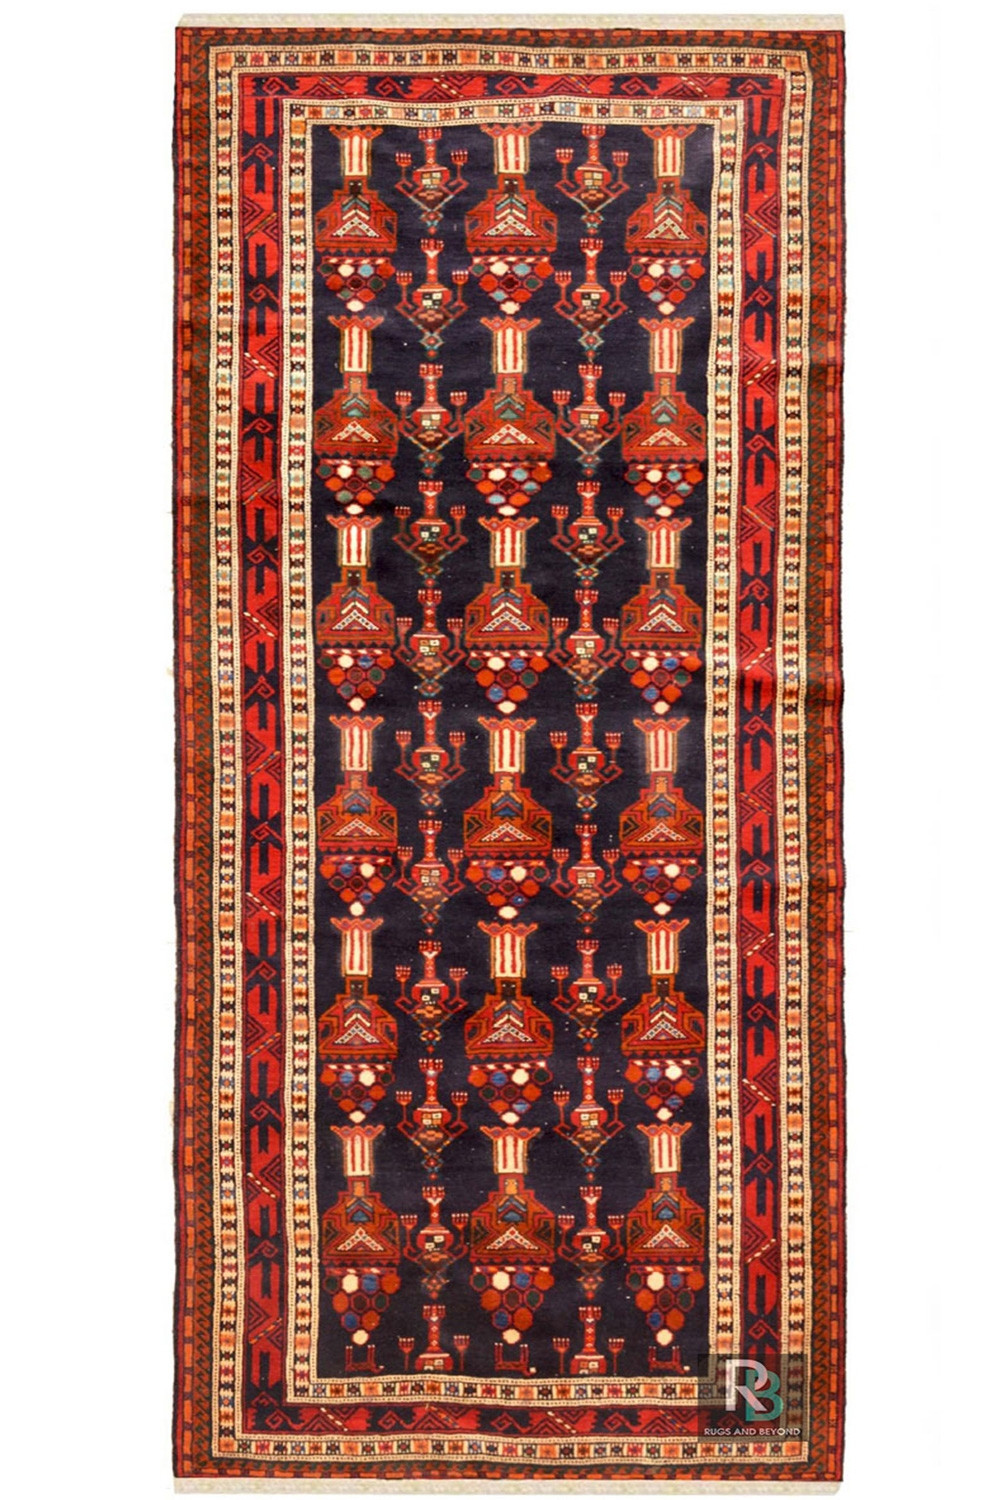 Egyptian Afghani Rugs And Carpet Online Rugsandbeyond